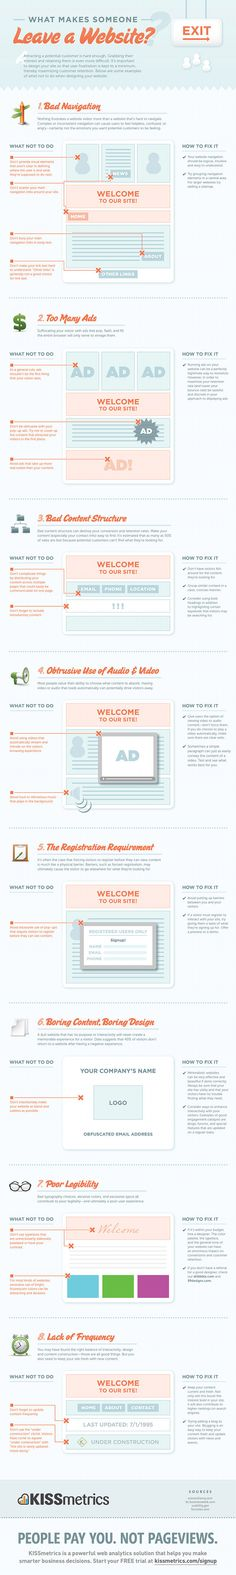 WEBDESIGN - What makes someone leave a website?...